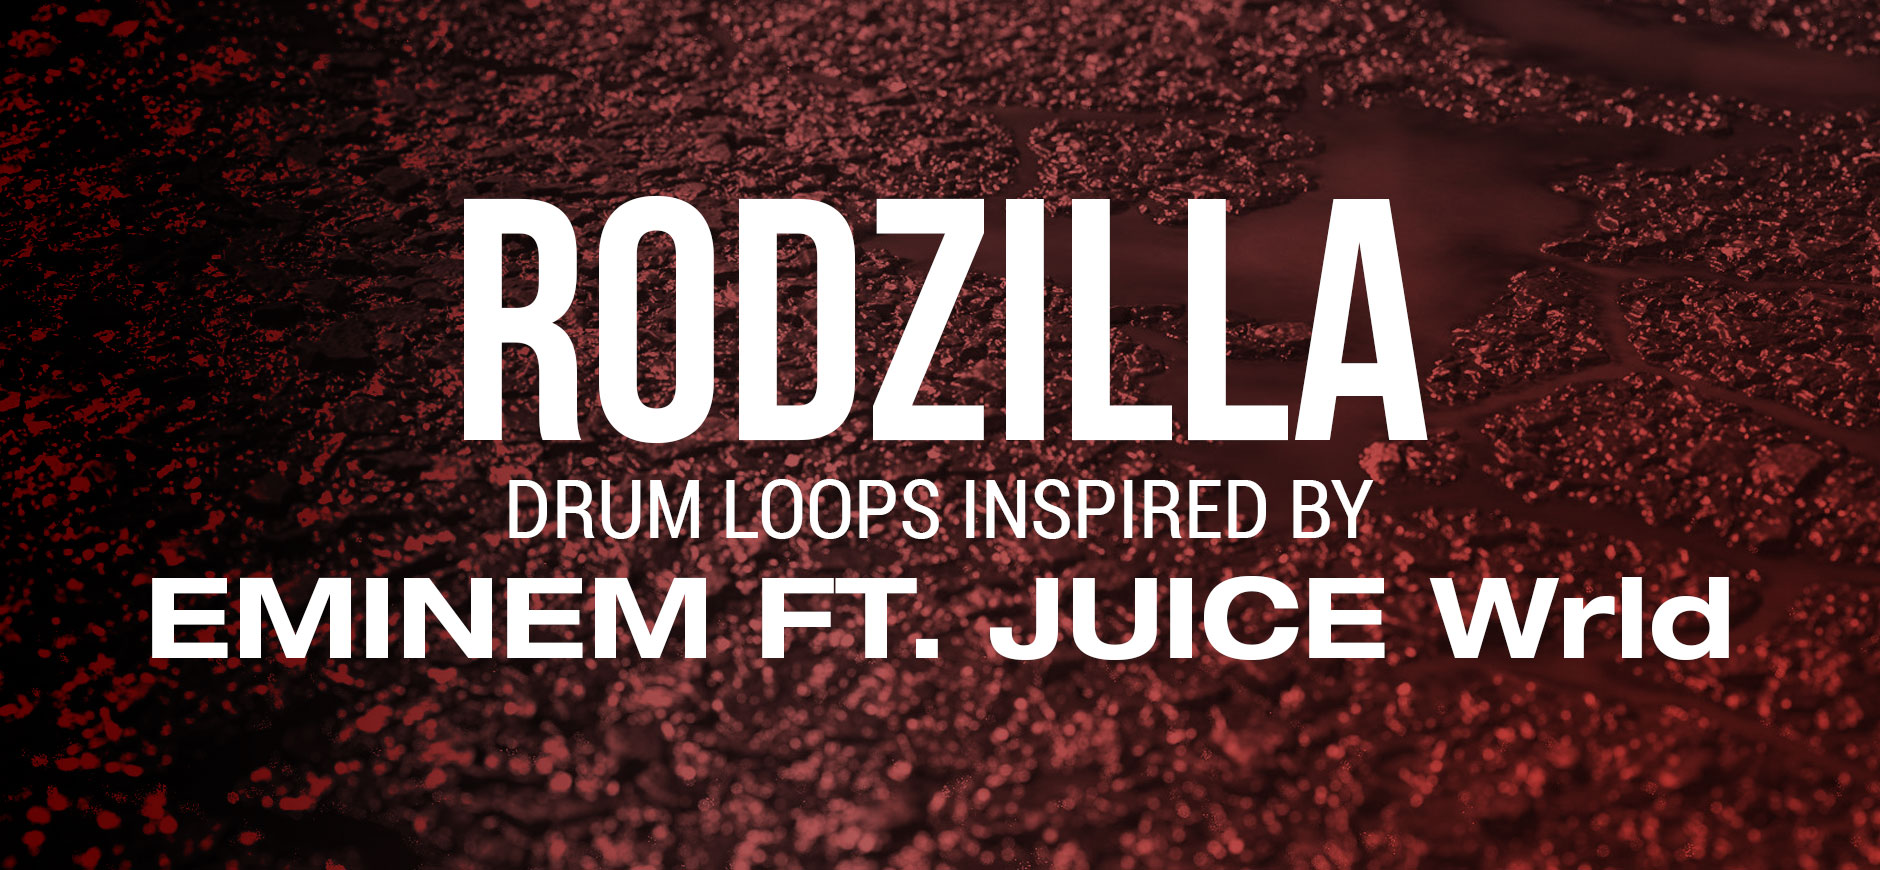 Godzilla Drum Loops Kit Geïnspireerd door Eminem ft. JUICE Wrld